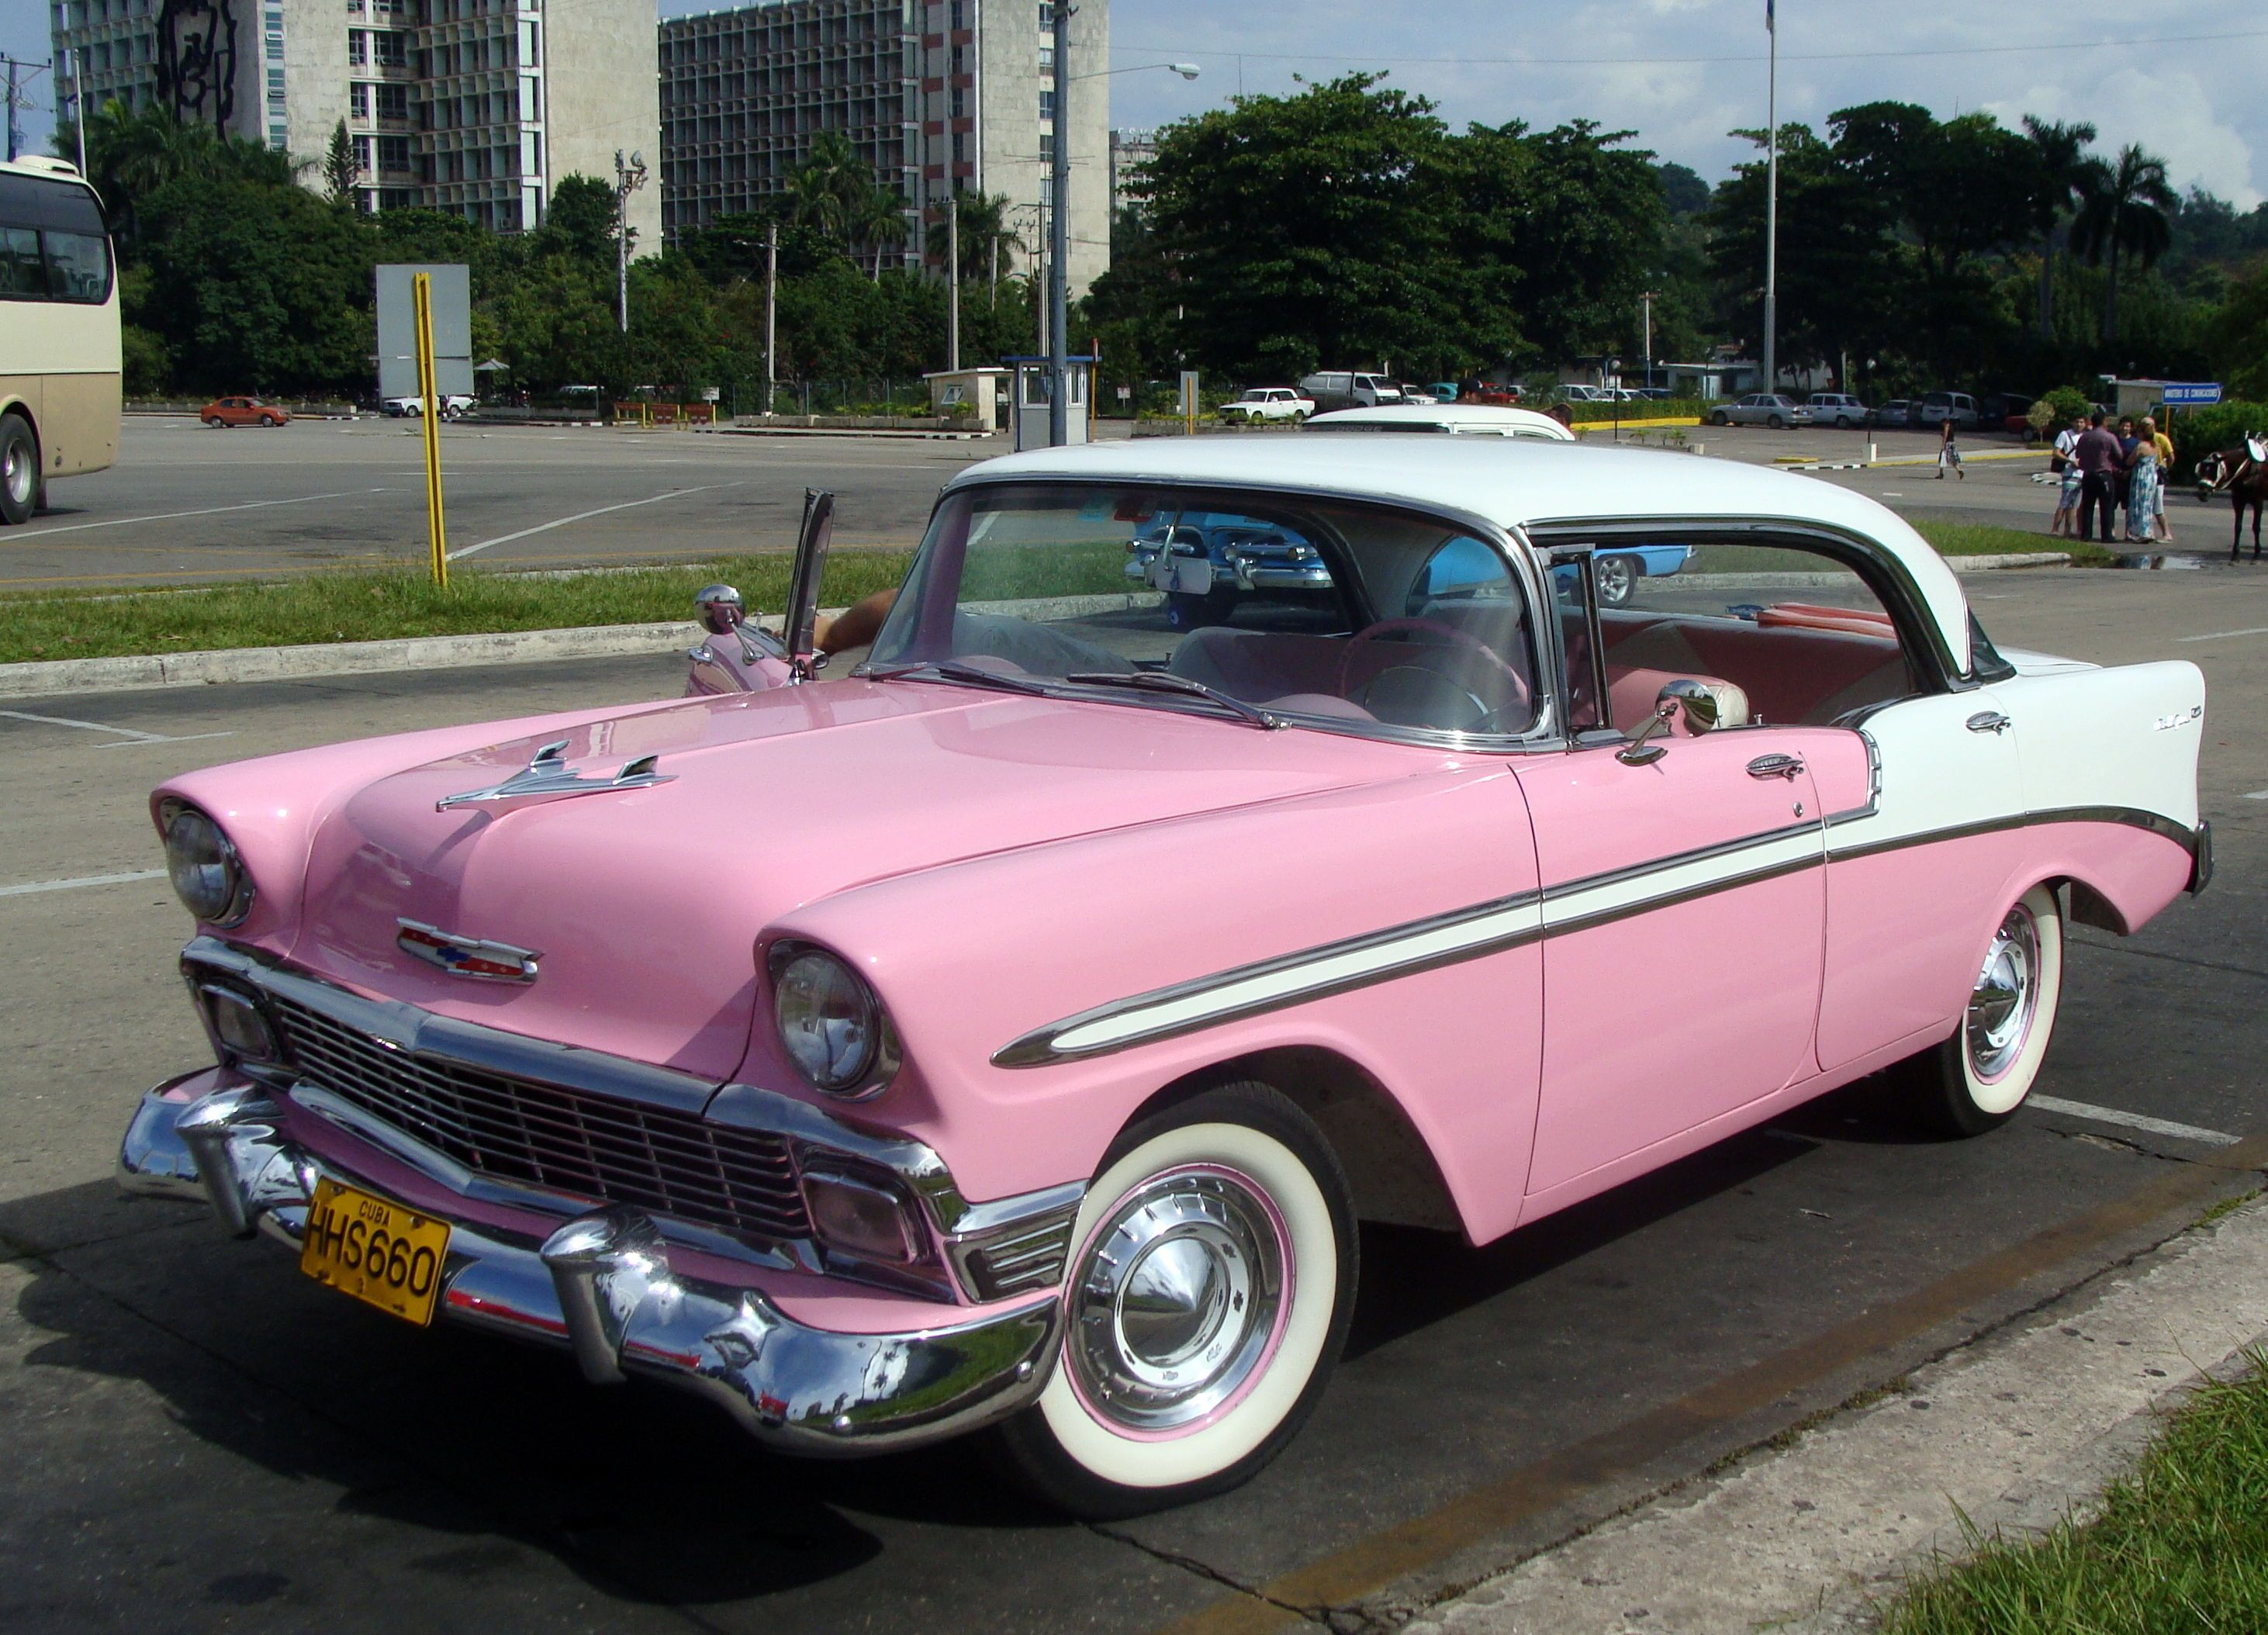 Pin by Lorraine Davis on Cuba - Cars | Pinterest | Cars, Chevrolet ...